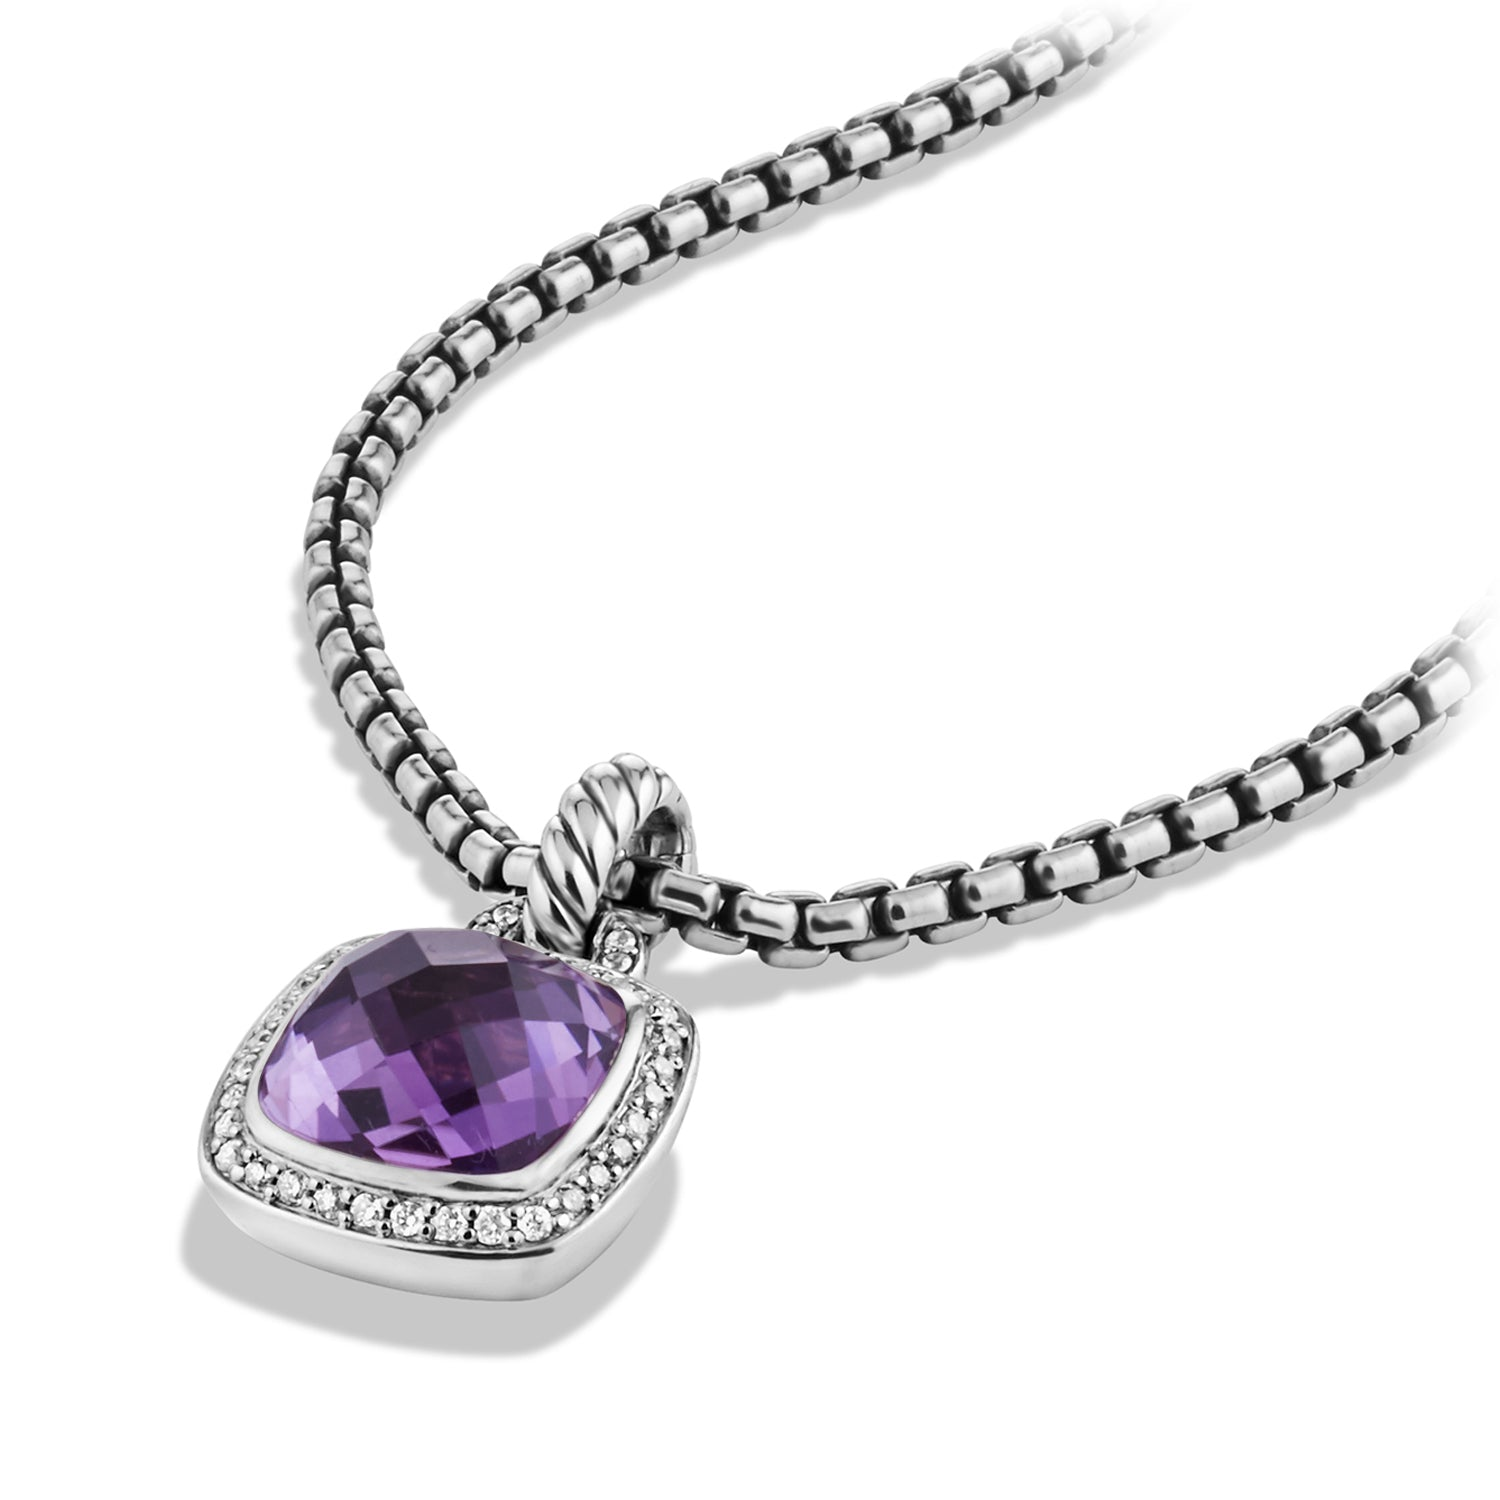 Pendant with Amethyst and Diamonds